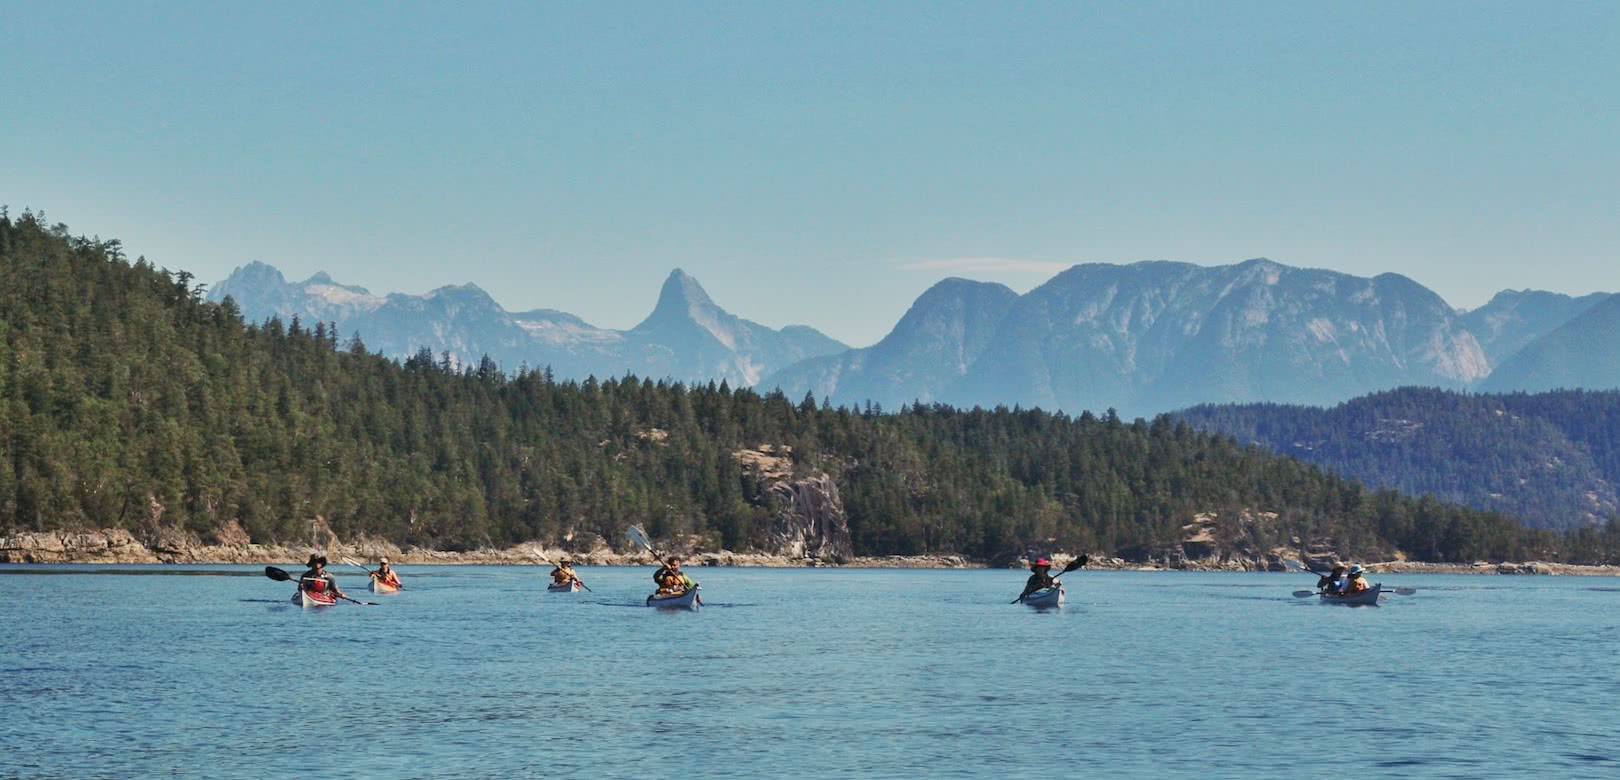 Desolation Sound is one of British Columbia's premier kayak destinations